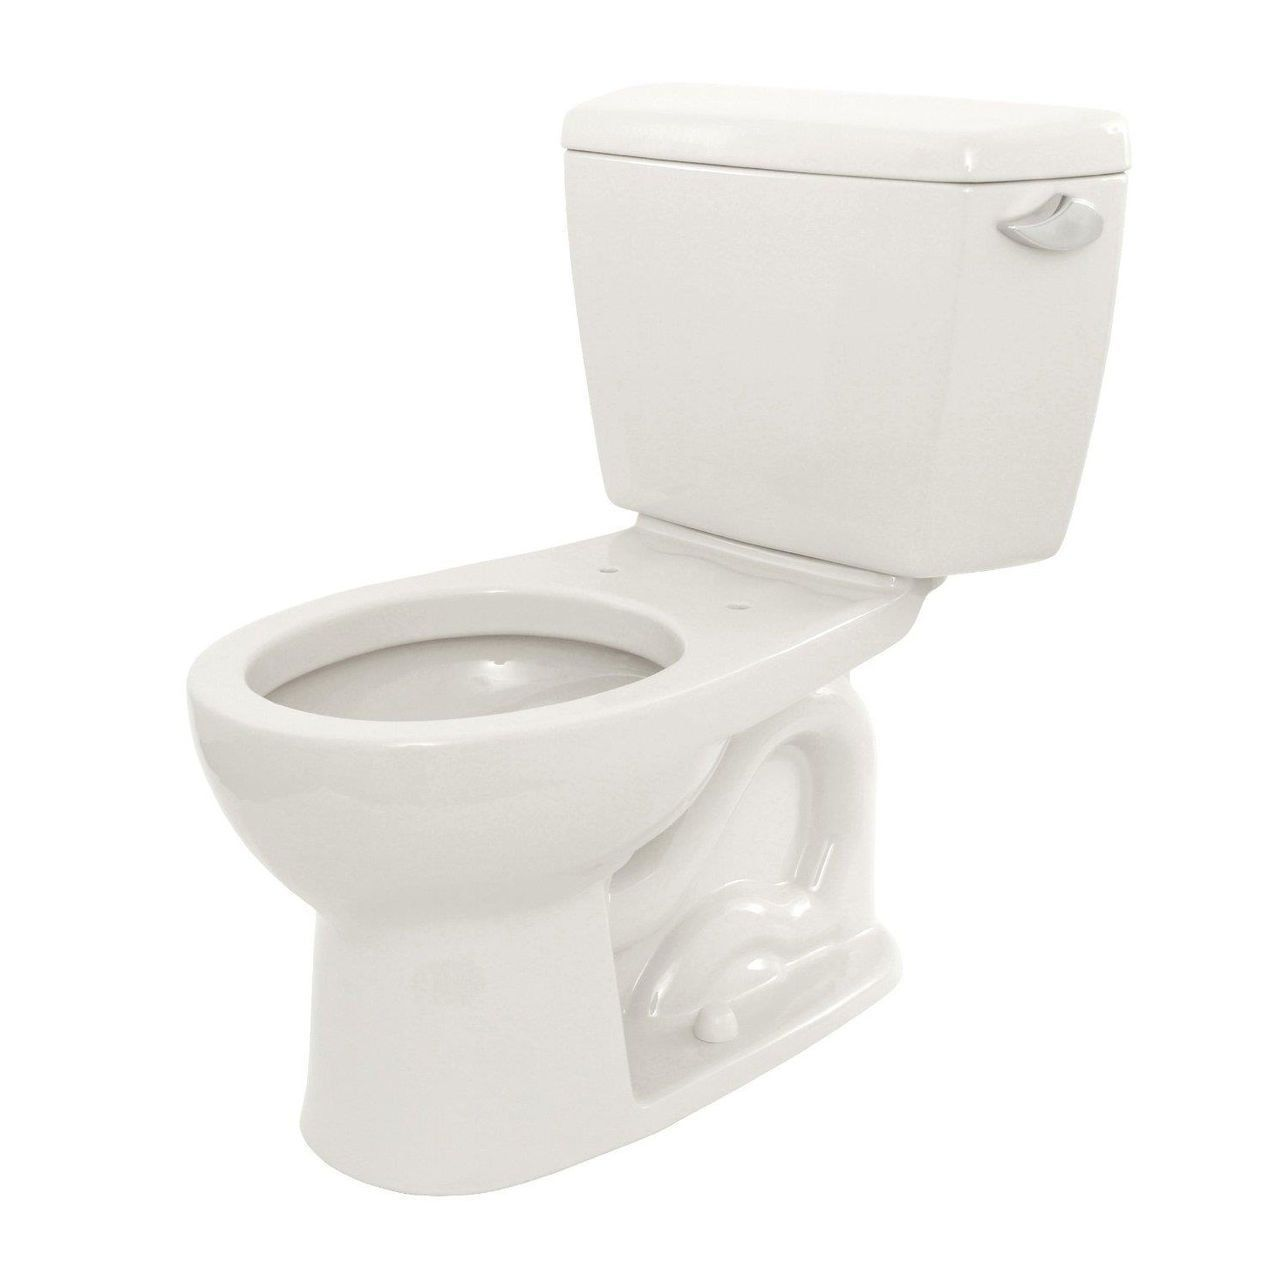 Toto Drake 2-piece Toilet with Round Bowl and Right Hand Trip Lever ...